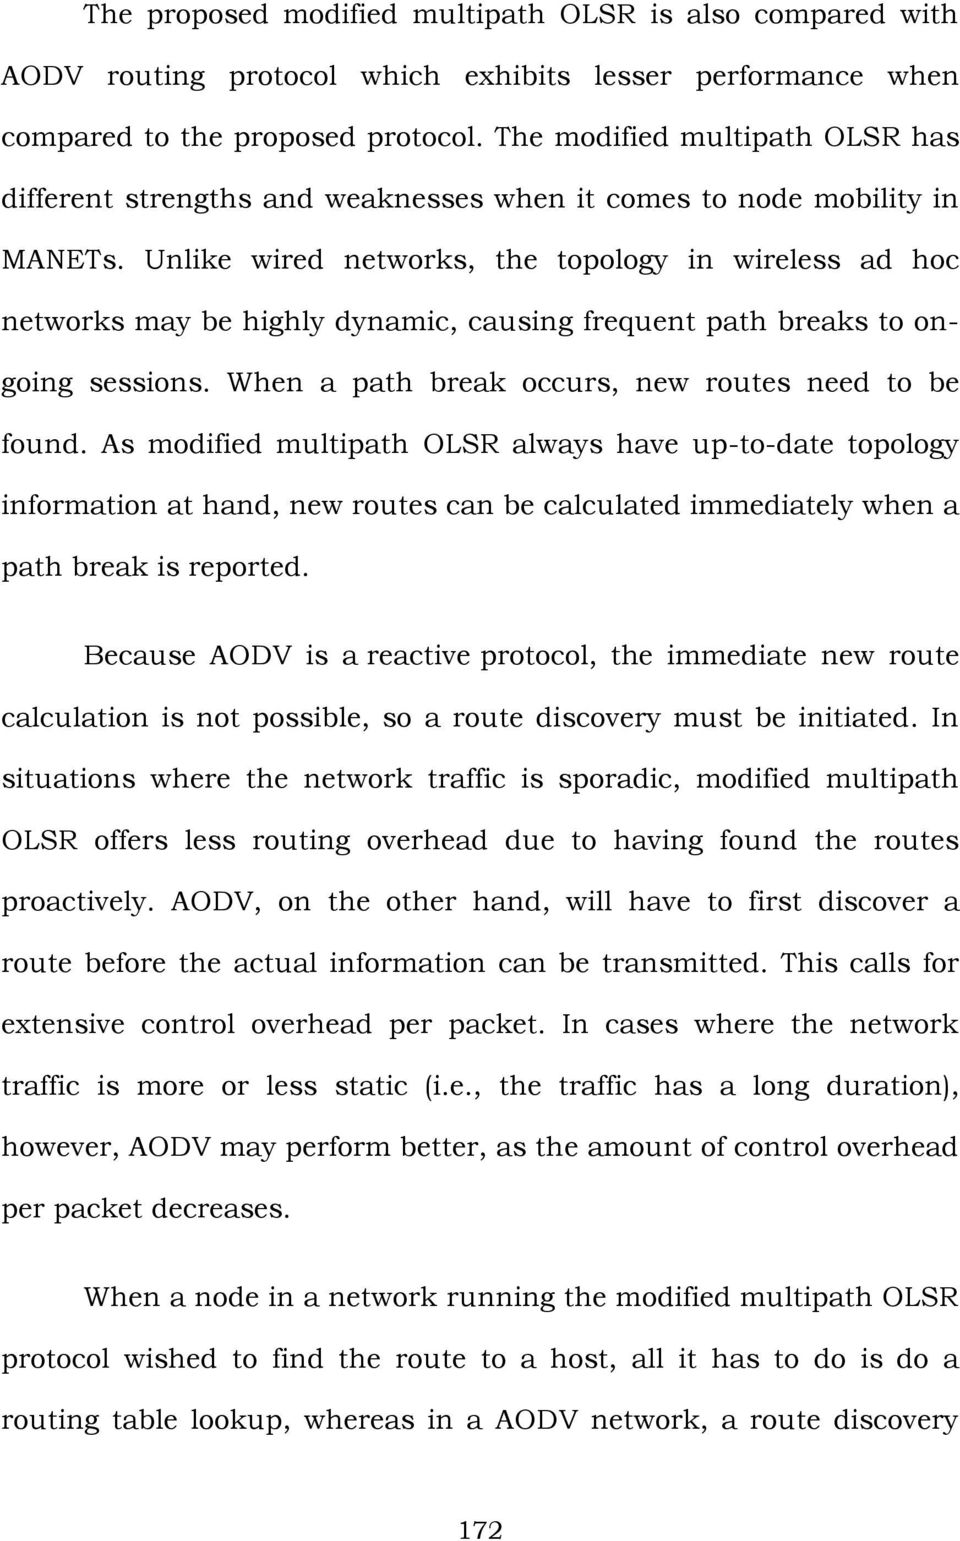 Unlike wired networks, the topology in wireless ad hoc networks may be highly dynamic, causing frequent path breaks to ongoing sessions. When a path break occurs, new routes need to be found.